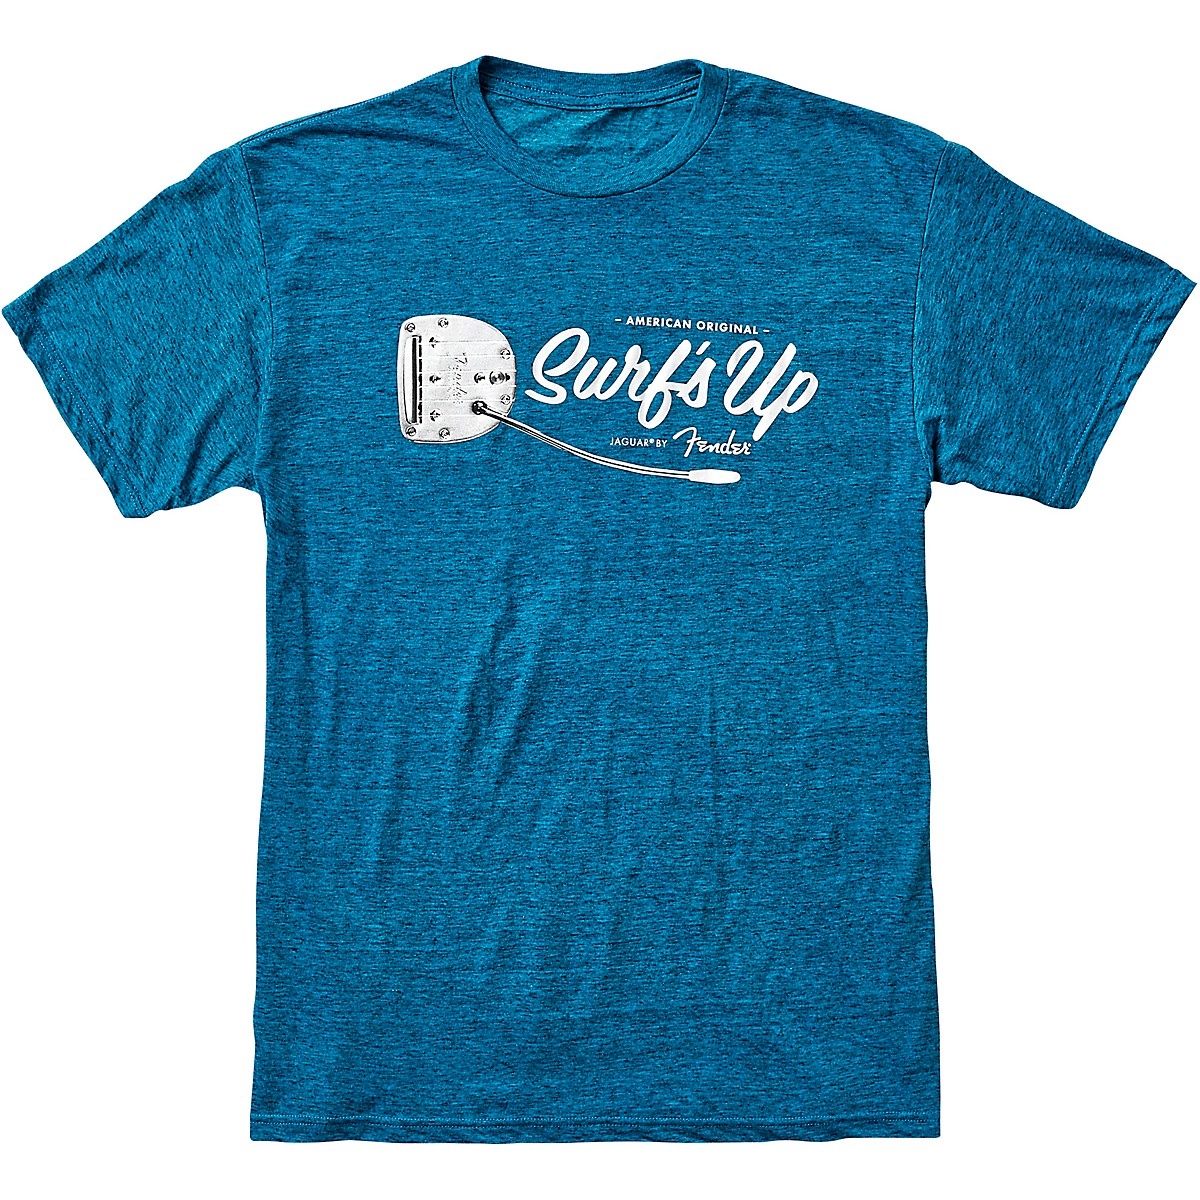 Fender American Original Surf's Up T-Shirt